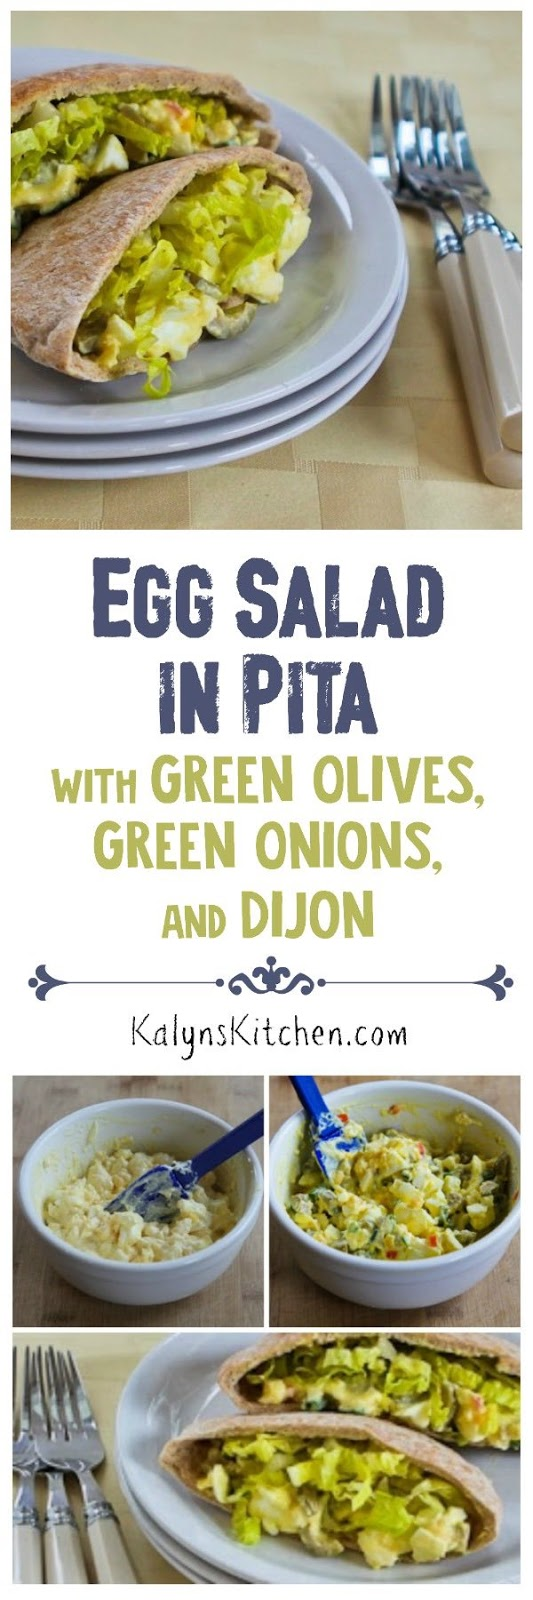 Egg Salad in Pita with Green Olives, Green Onions, and Dijon ...